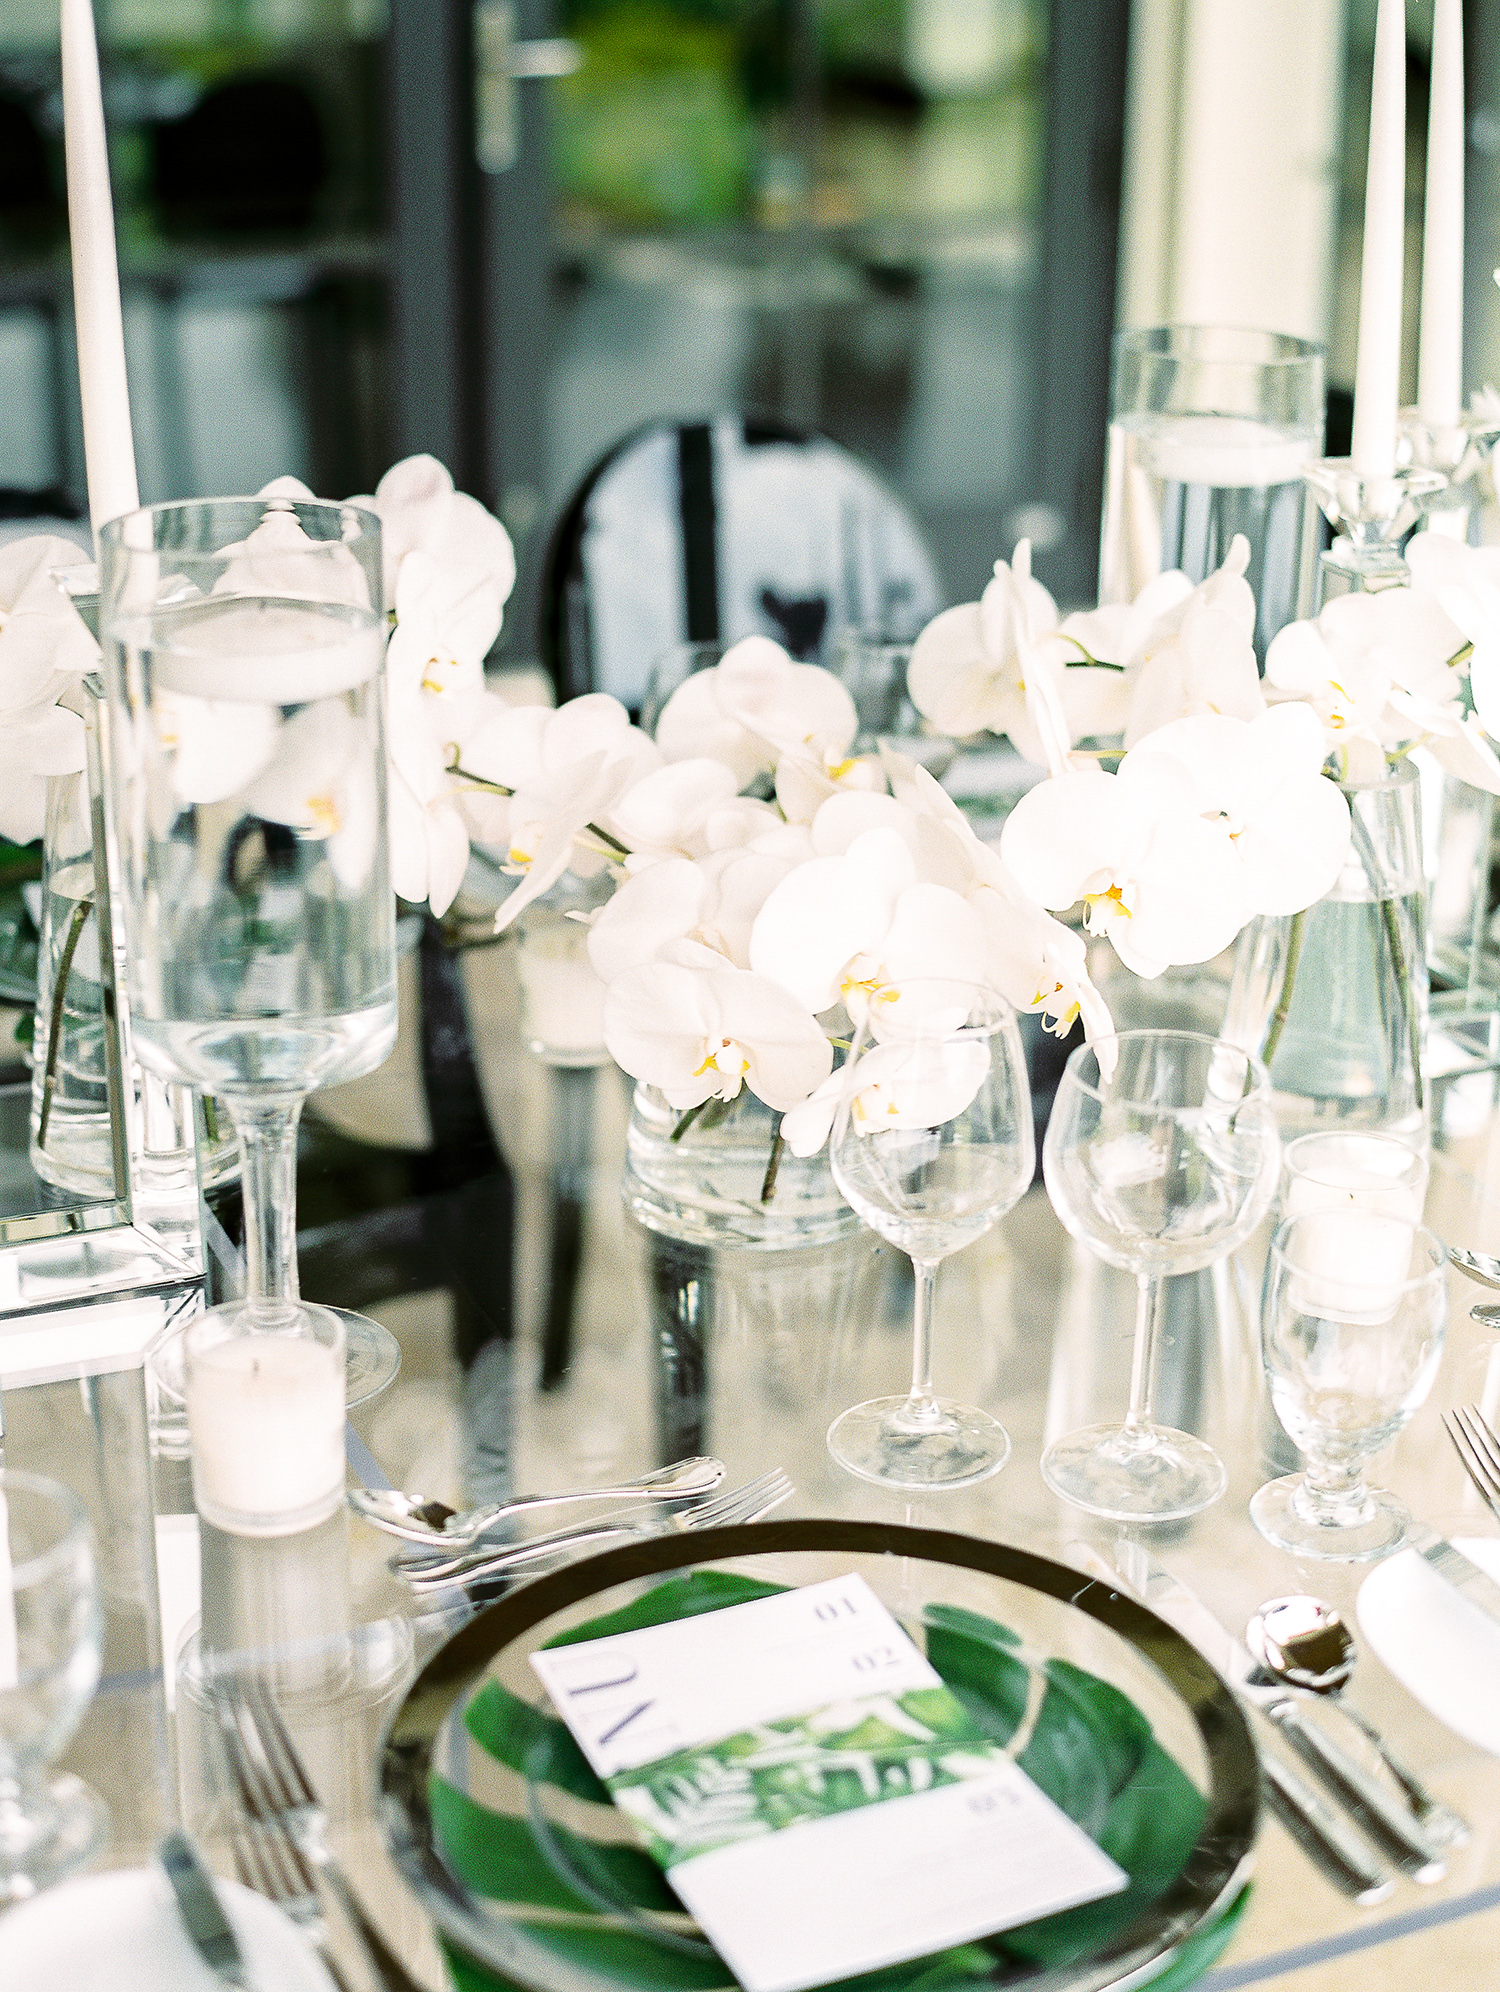 melissa leighton wedding centerpieces green chargers